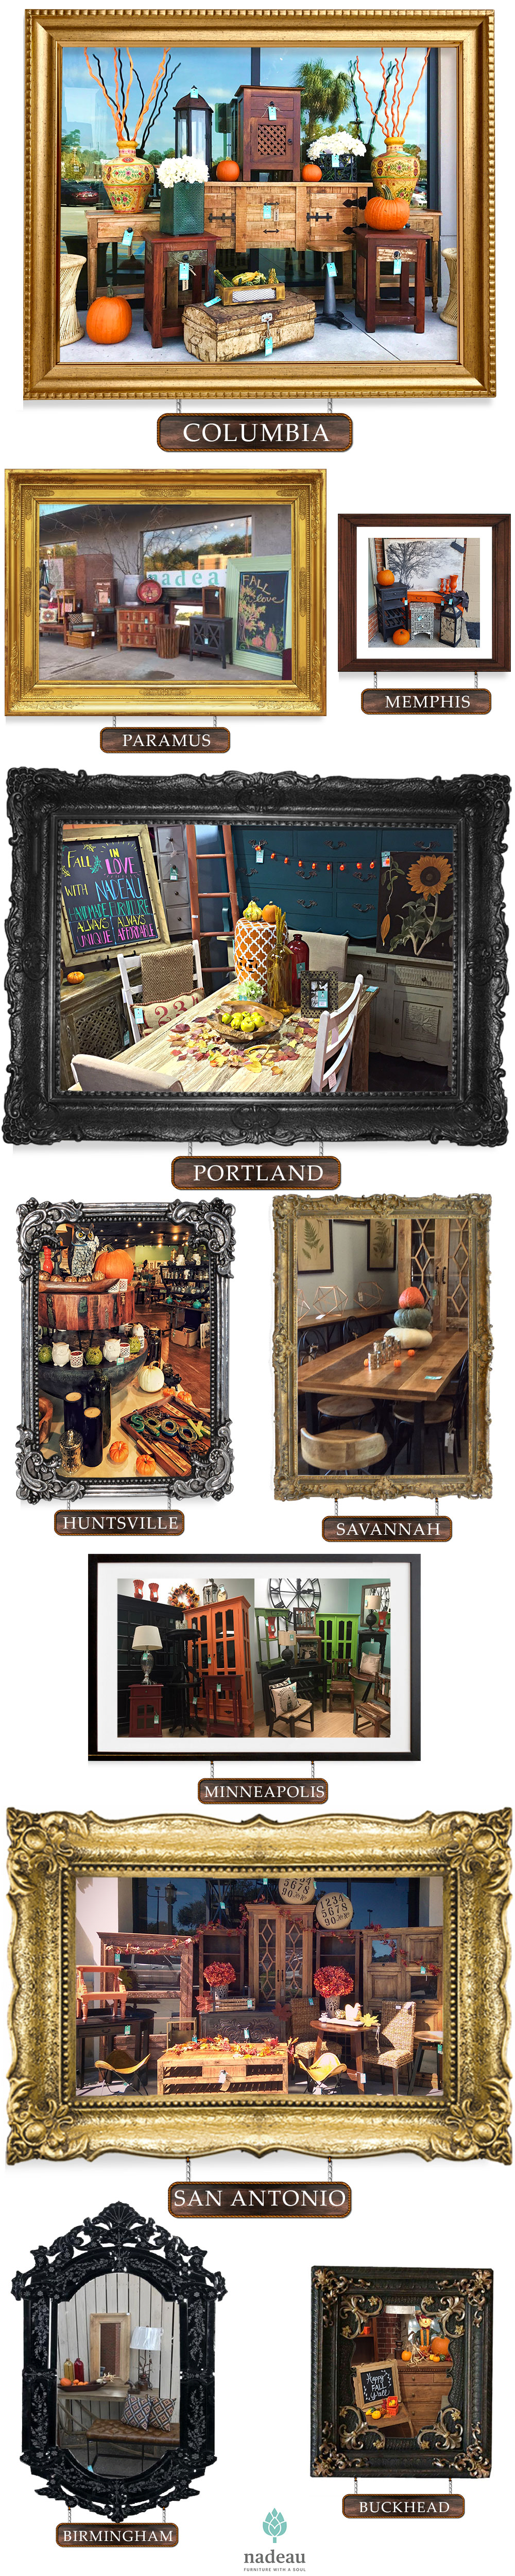 Rustic, Soulful, and Spooky: It's Feeling Like Fall at Nadeau!